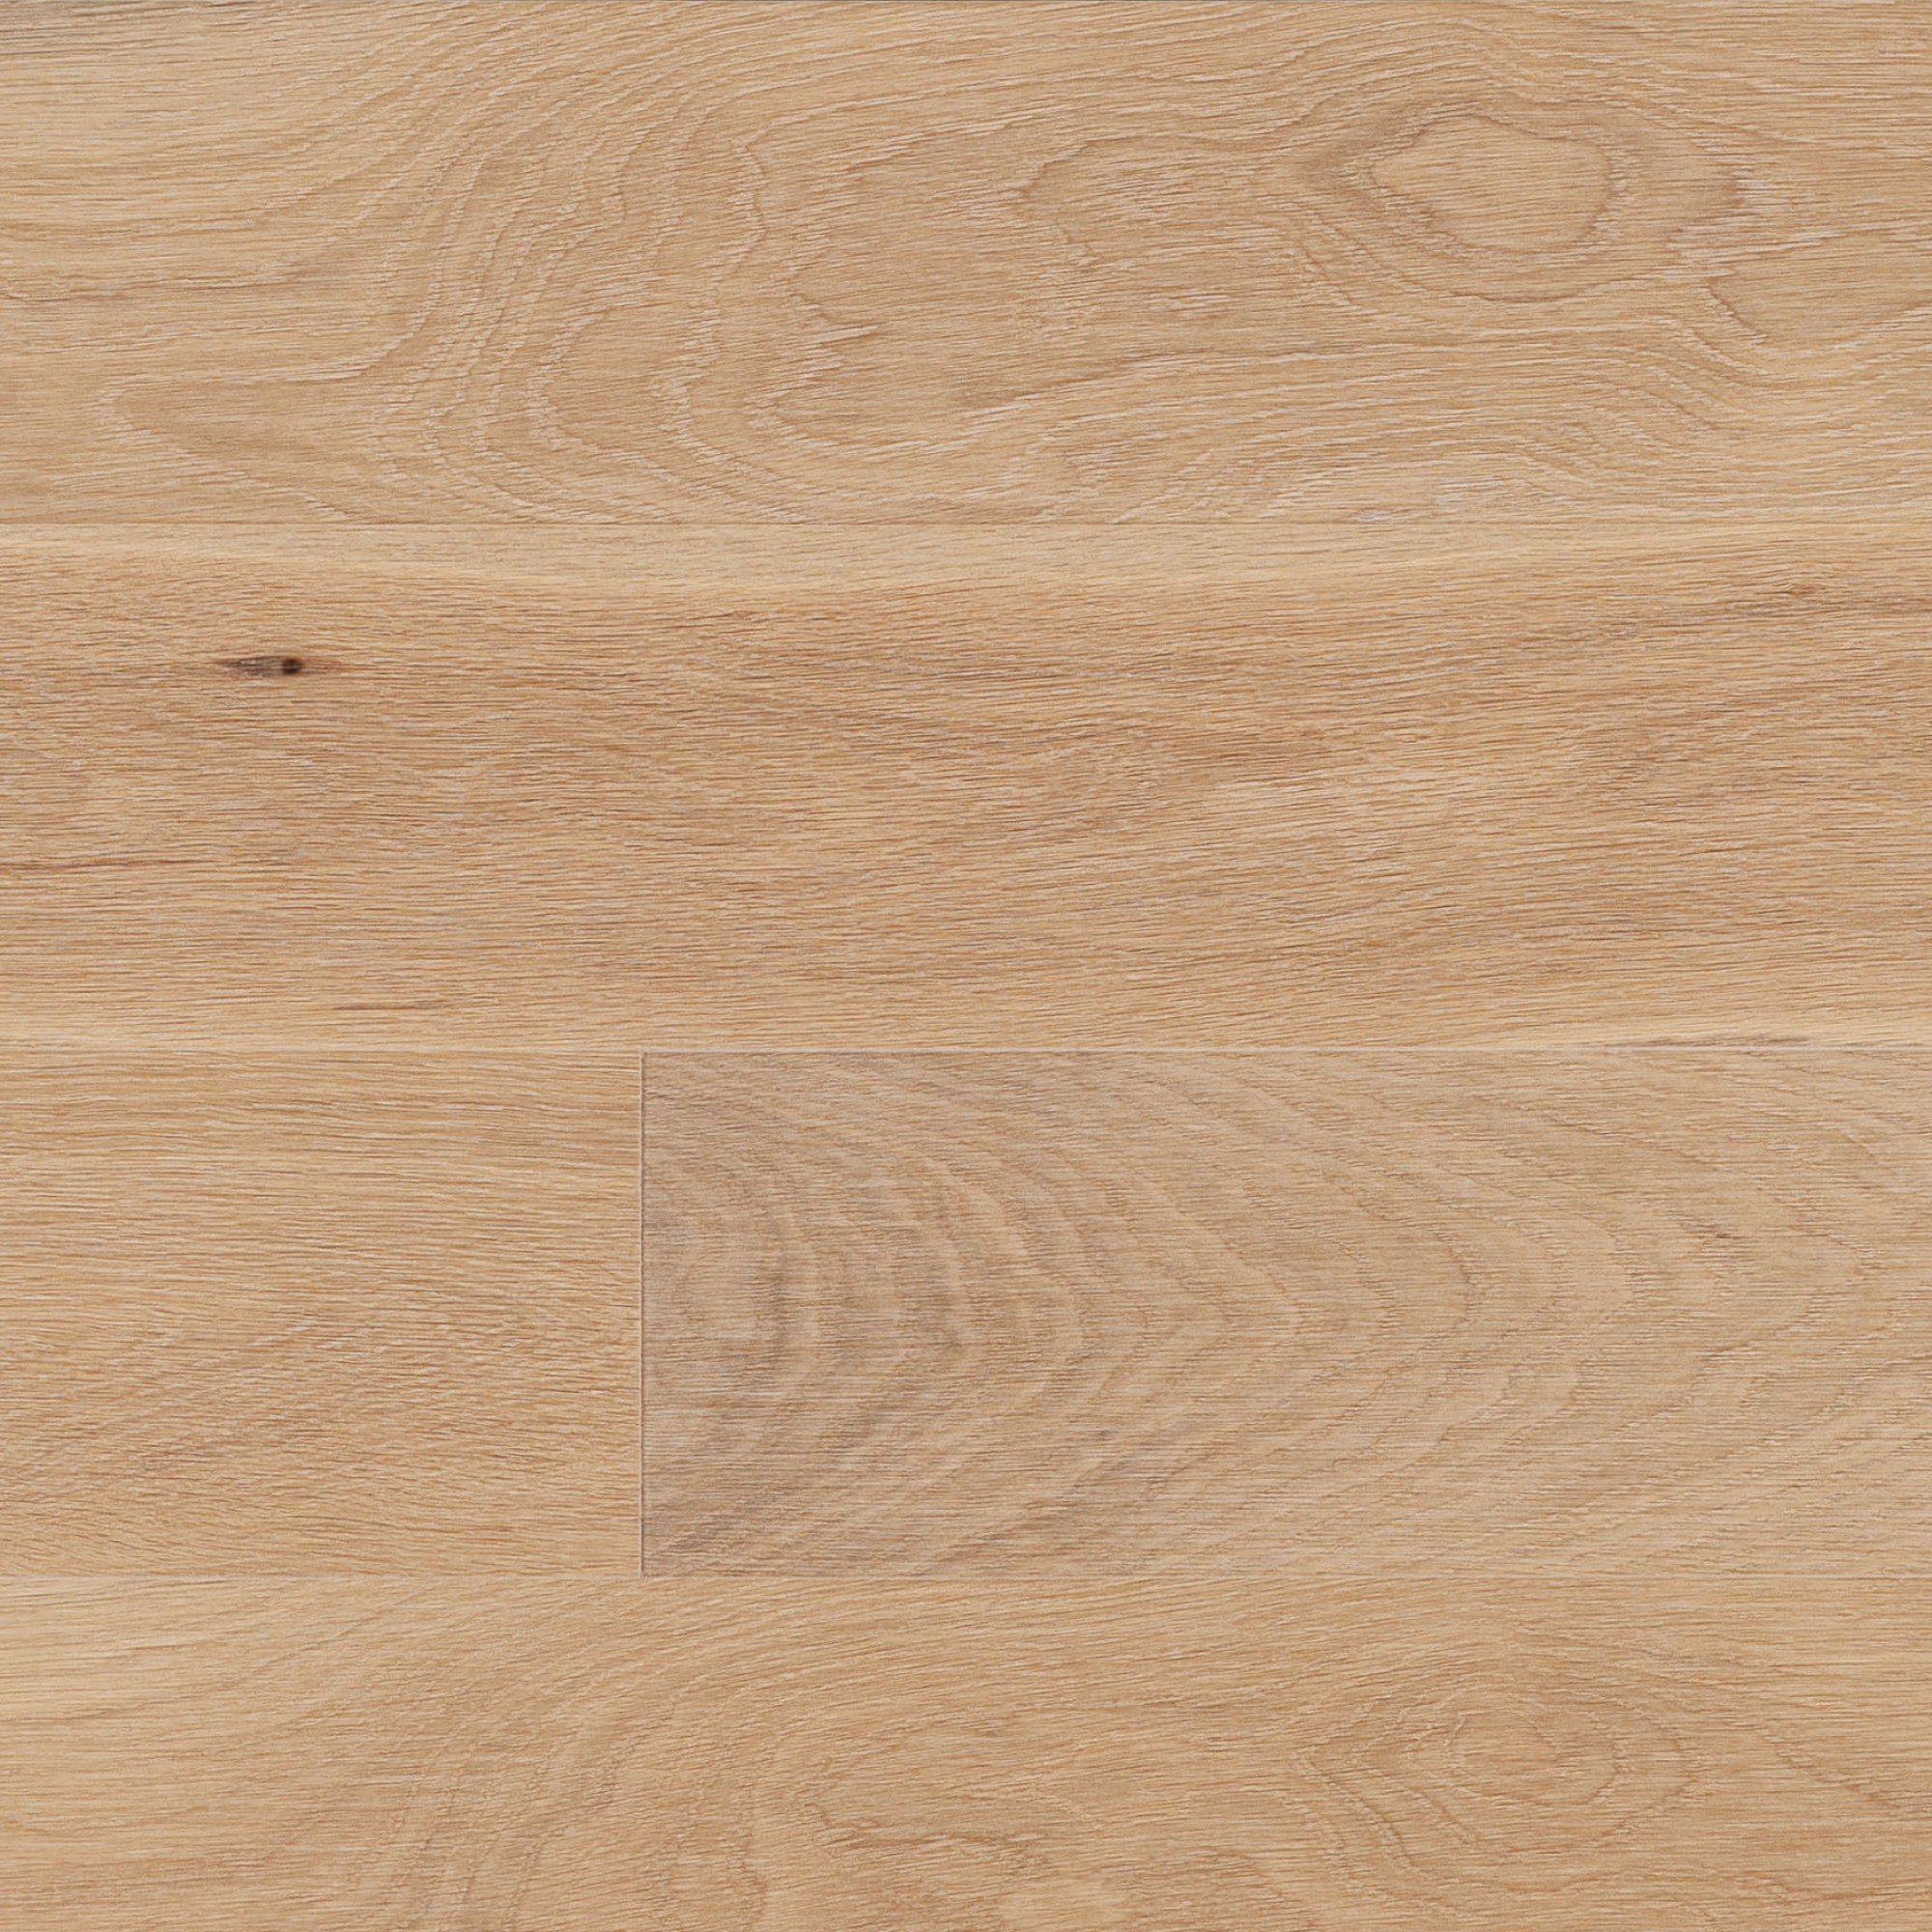 Admiration White Oak Isla Exclusive Brushed Mirage